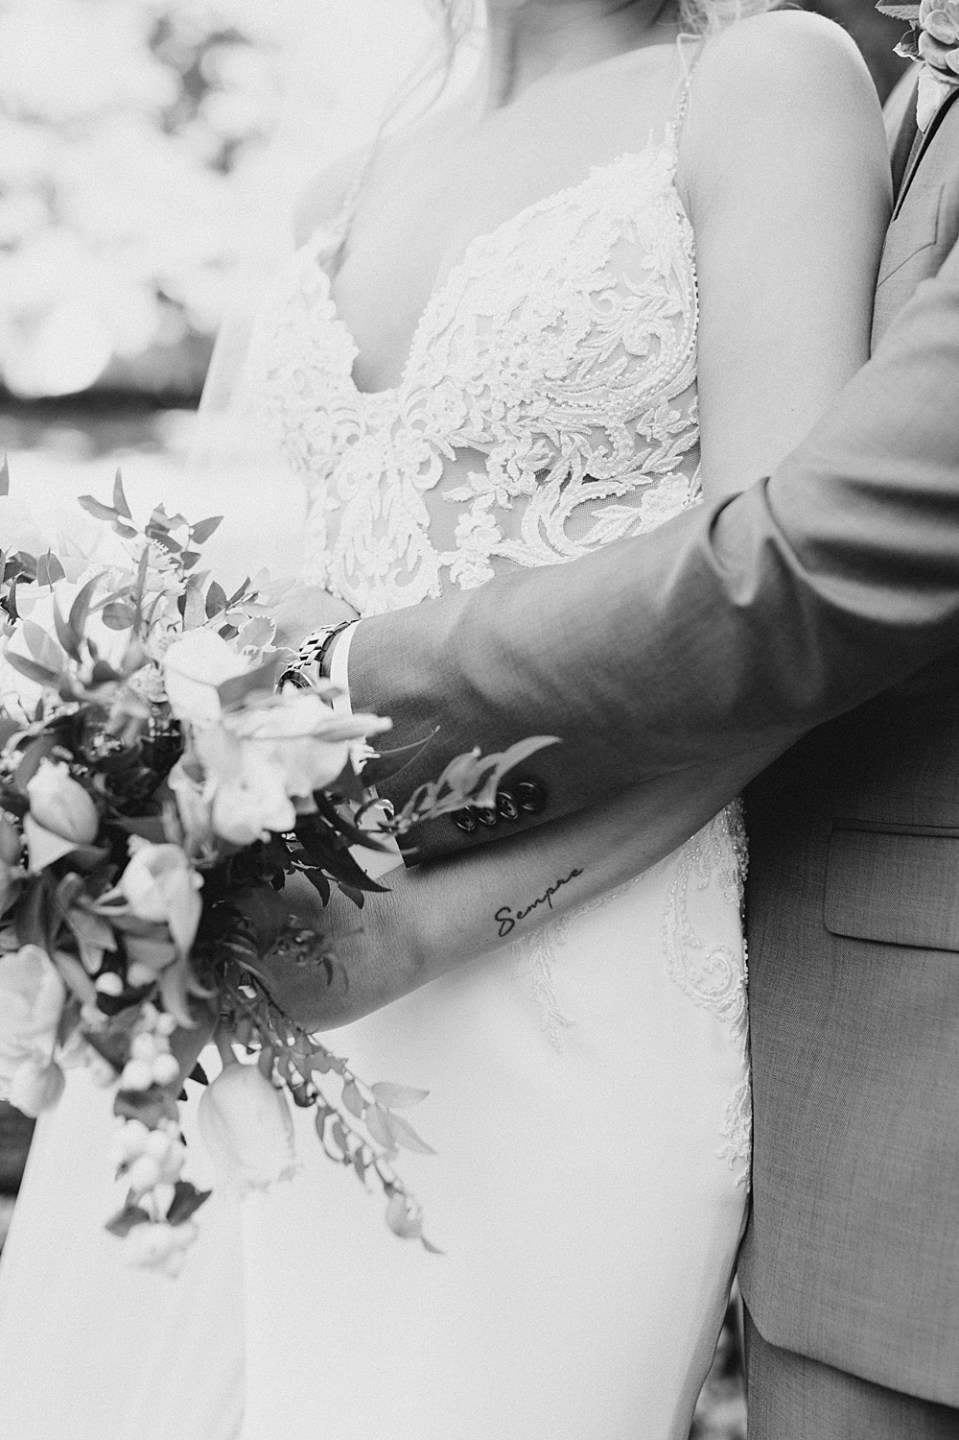 wedding dress details | new jersey wedding | sarah canning photography